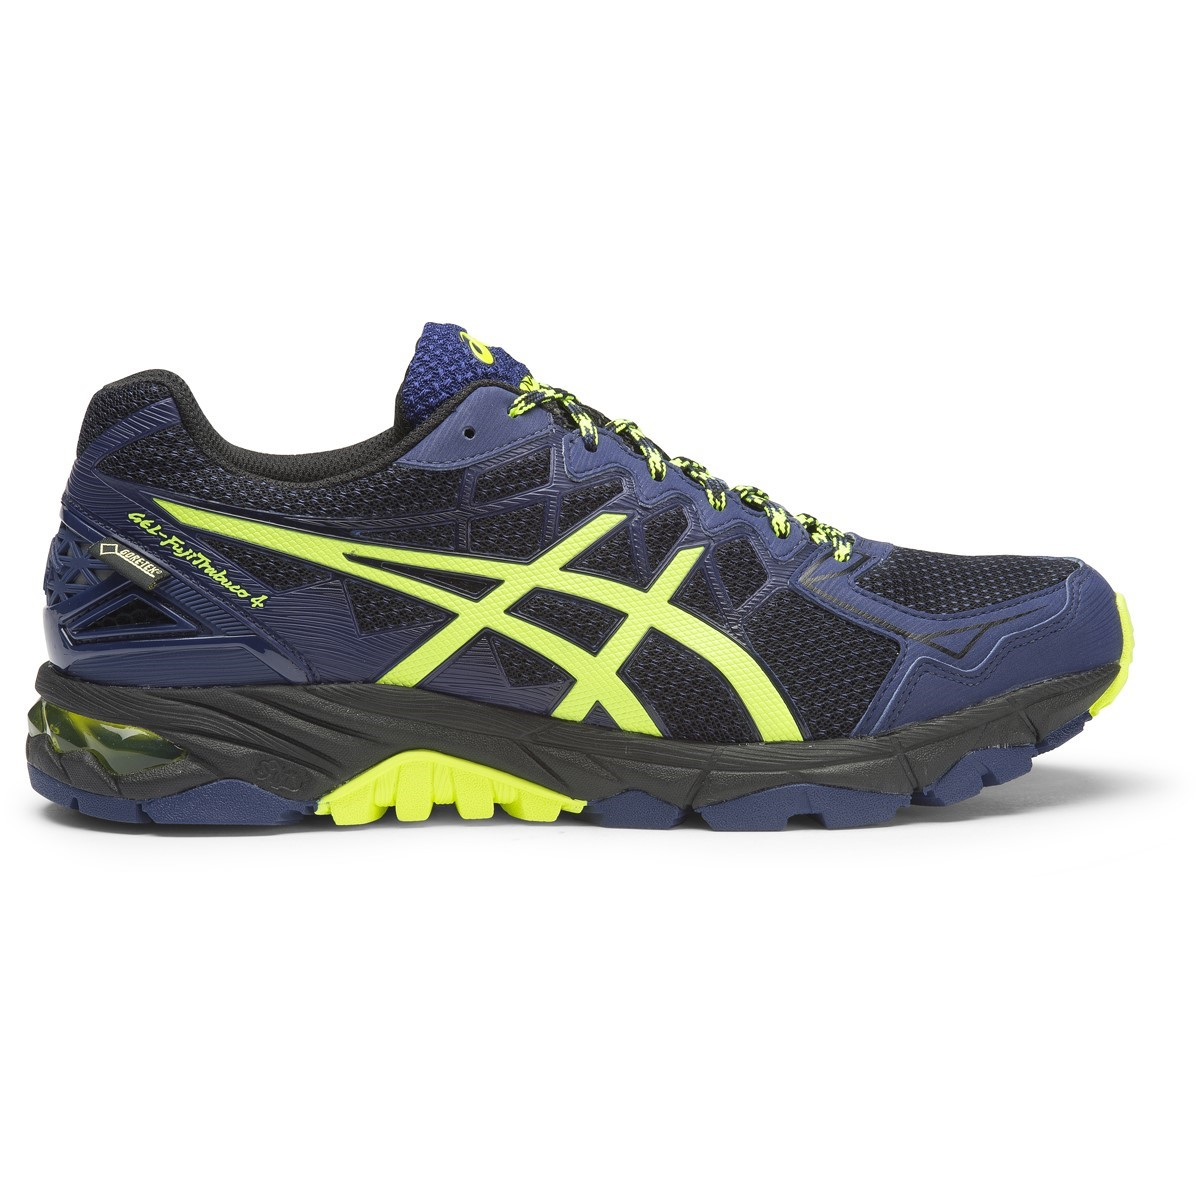 asics gel fuji trabuco 4 gtx mens trail running shoes black flash yellow indigo blue online. Black Bedroom Furniture Sets. Home Design Ideas